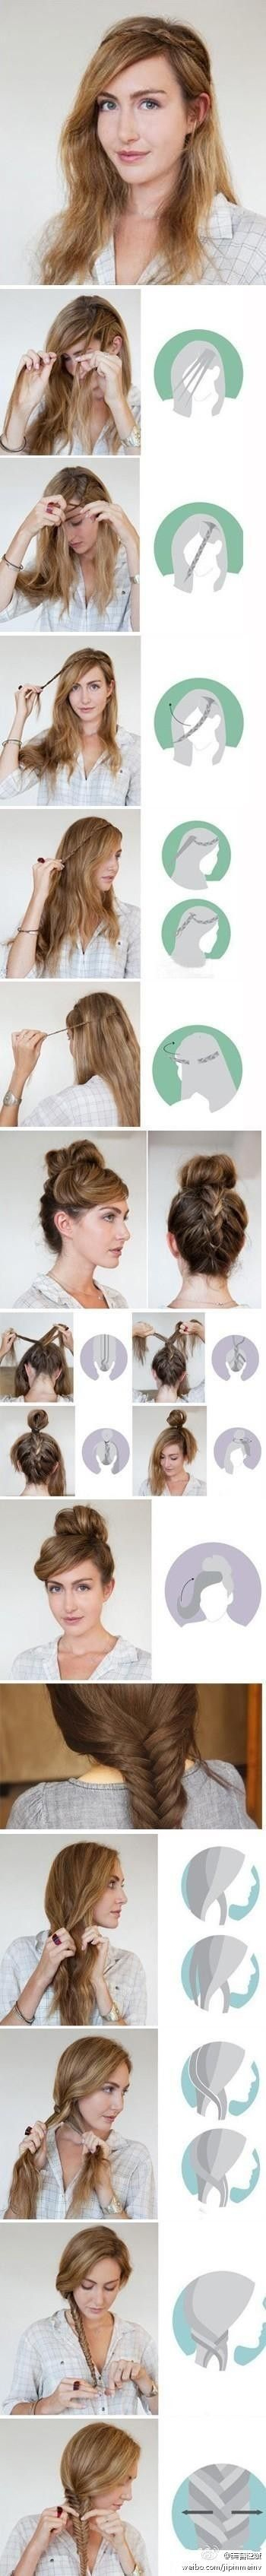 #DIY Hair #coiffure #tutorials